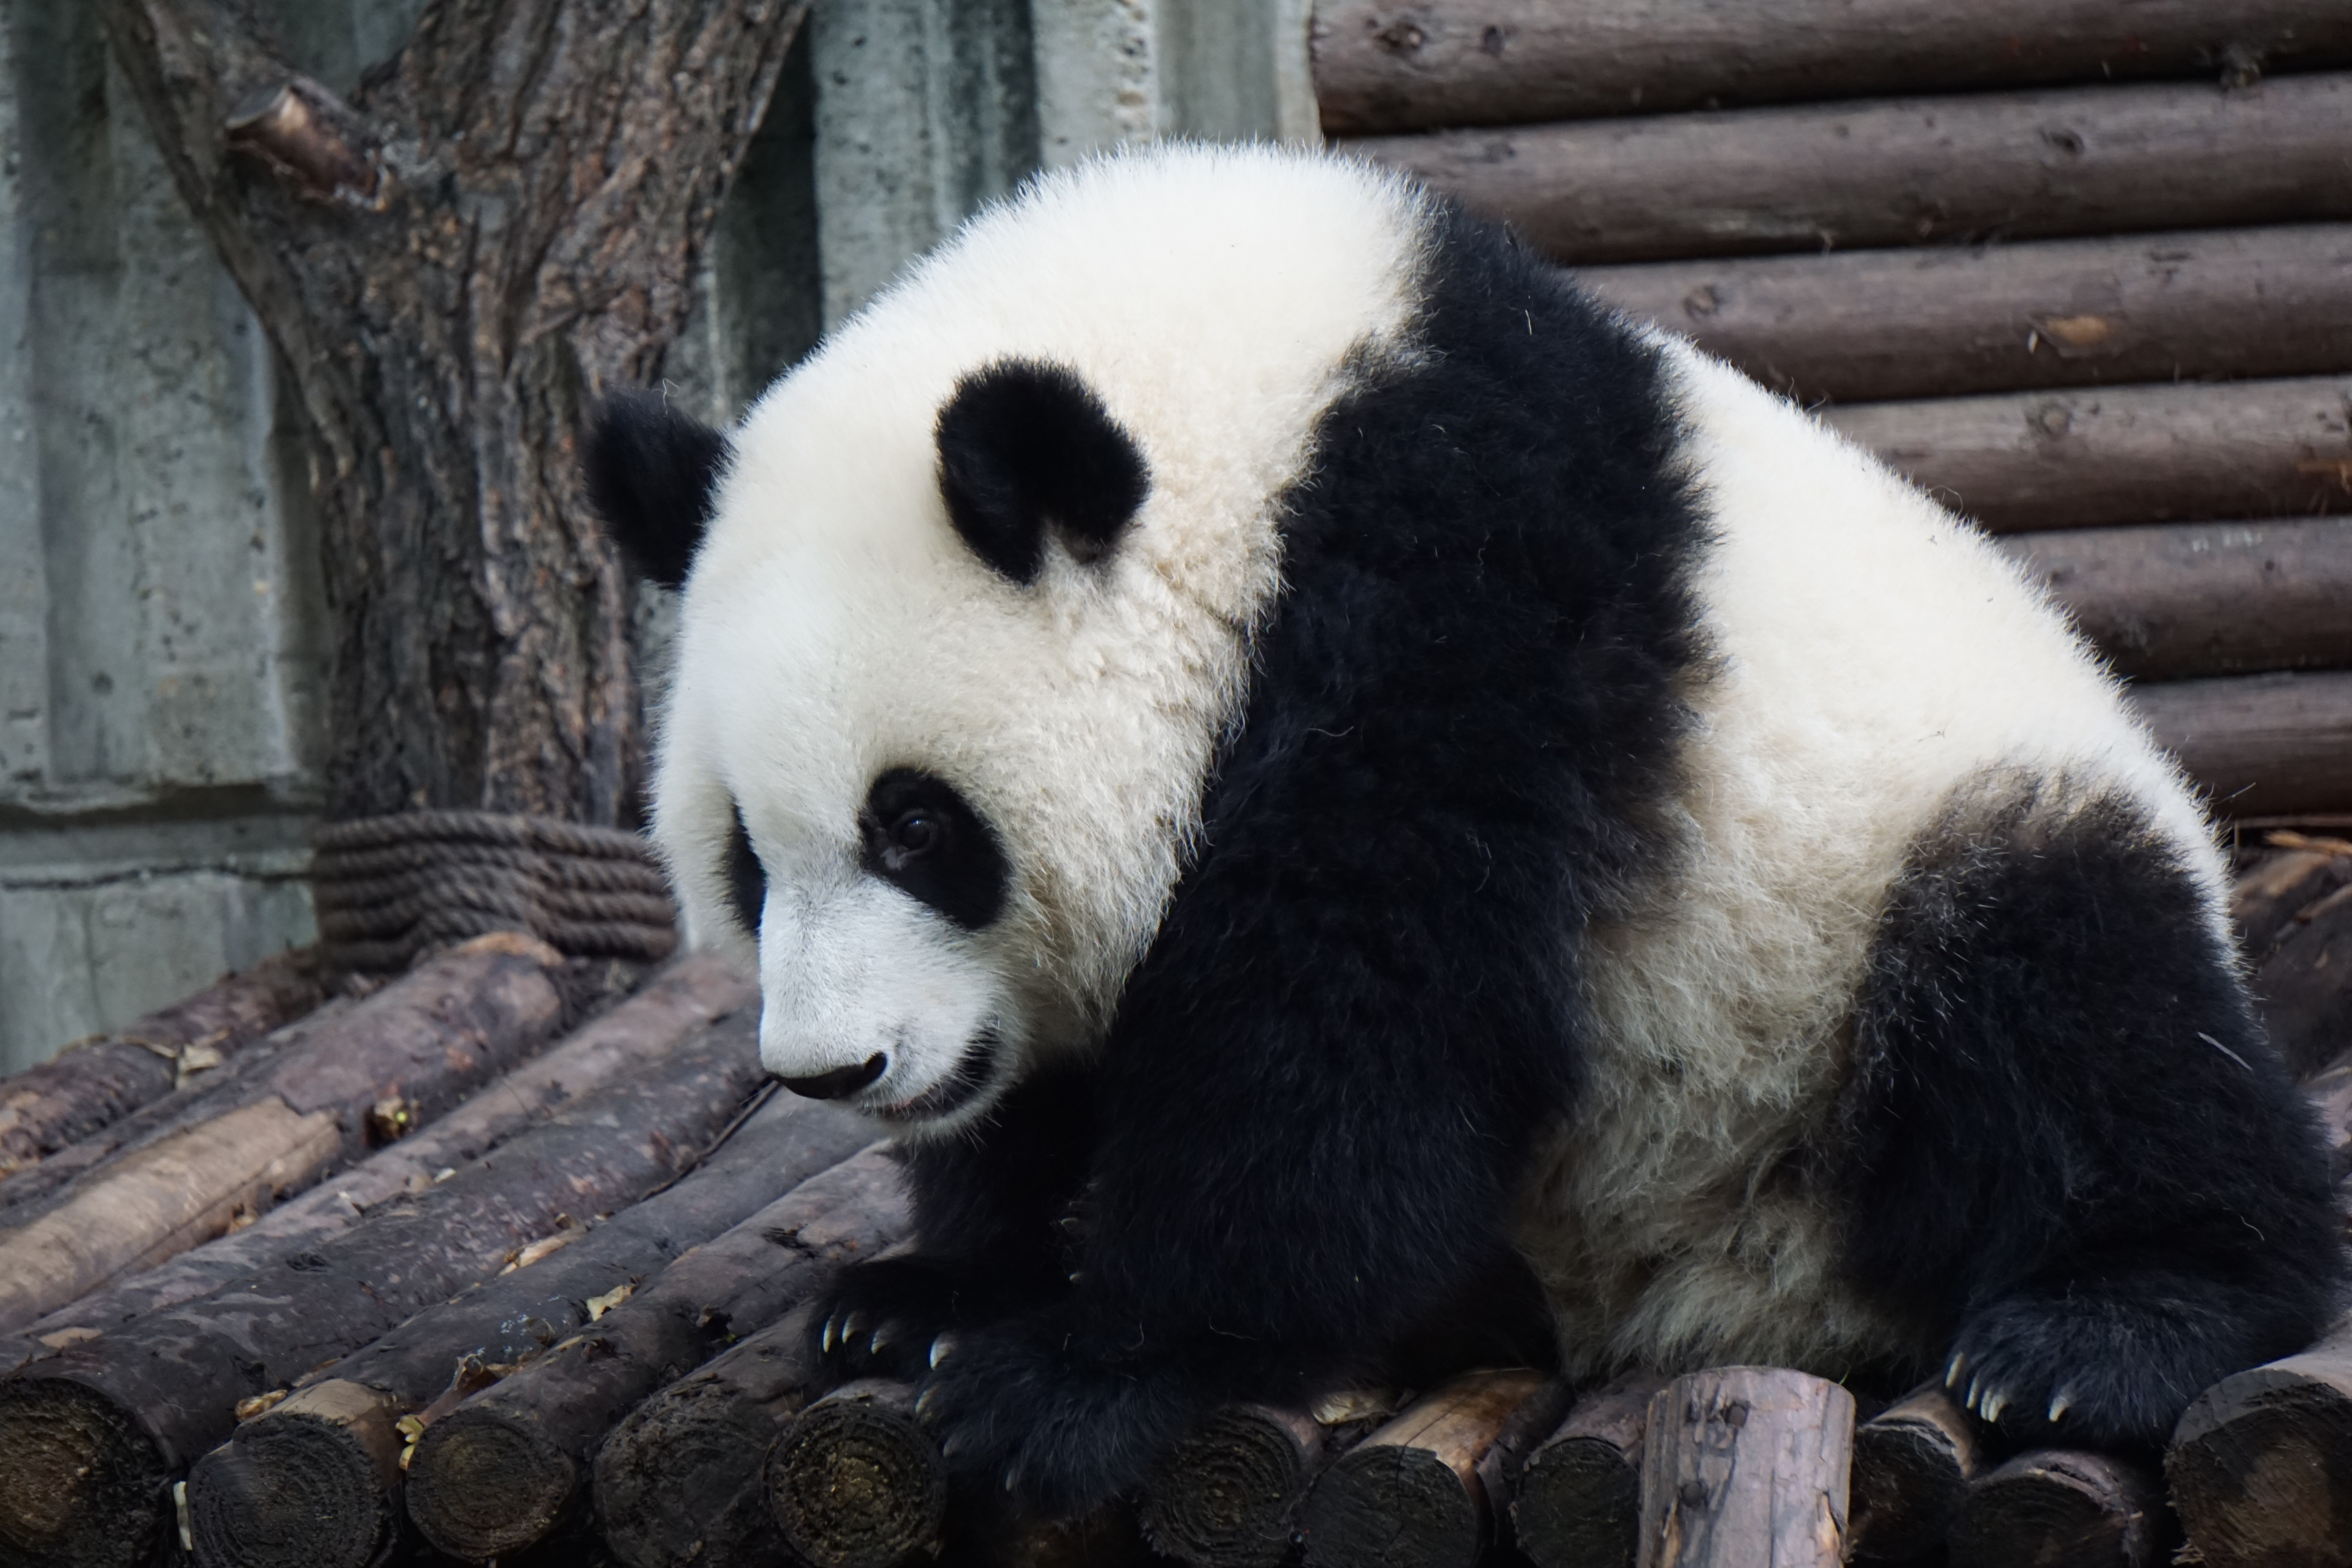 137886 download wallpaper Animals, Panda, Bear, Is Sitting, Sits screensavers and pictures for free